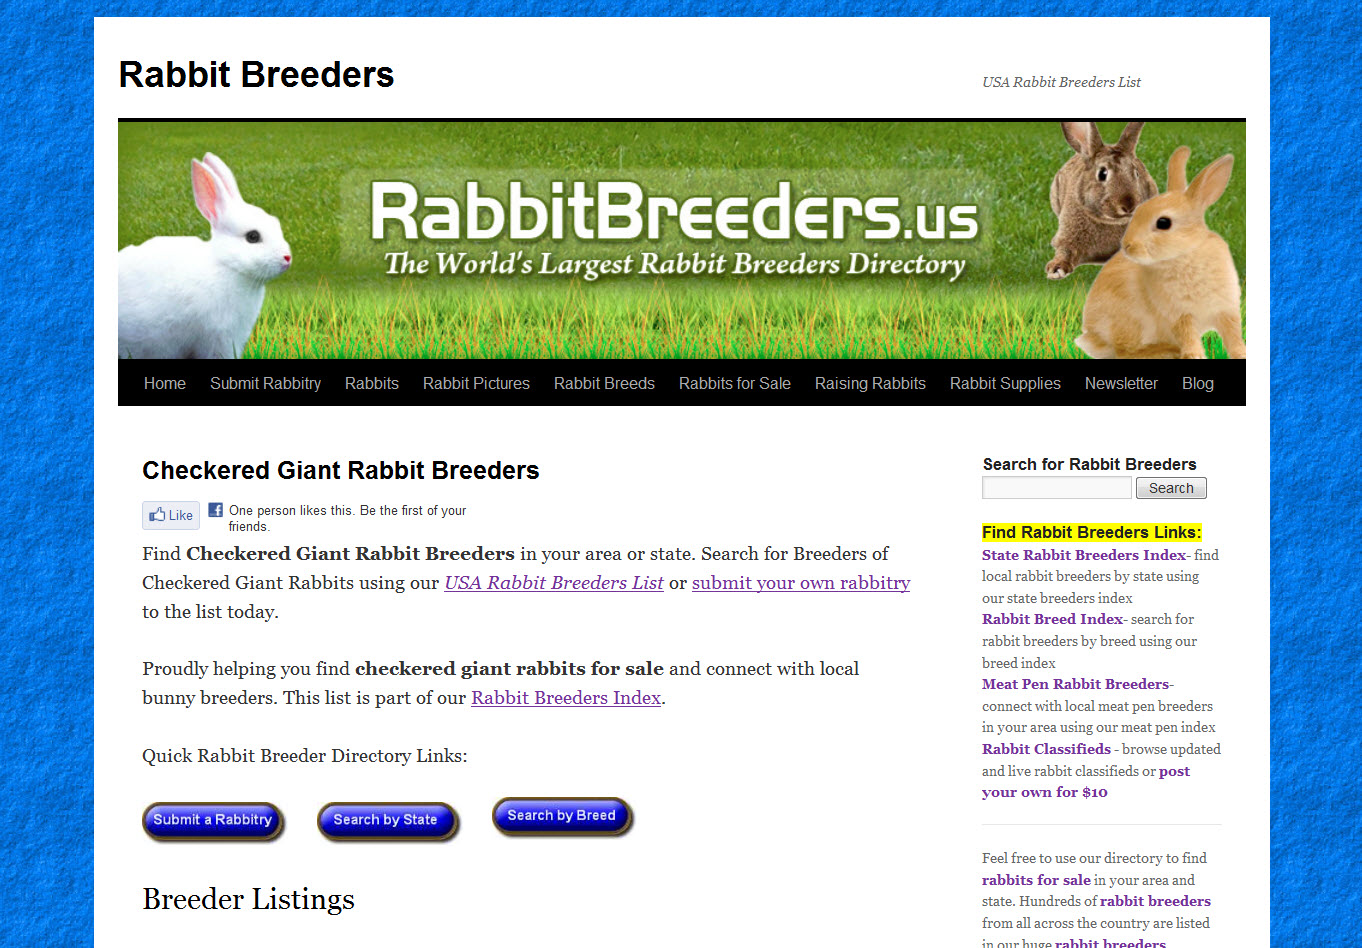 Checkered Giant Rabbit Breeders